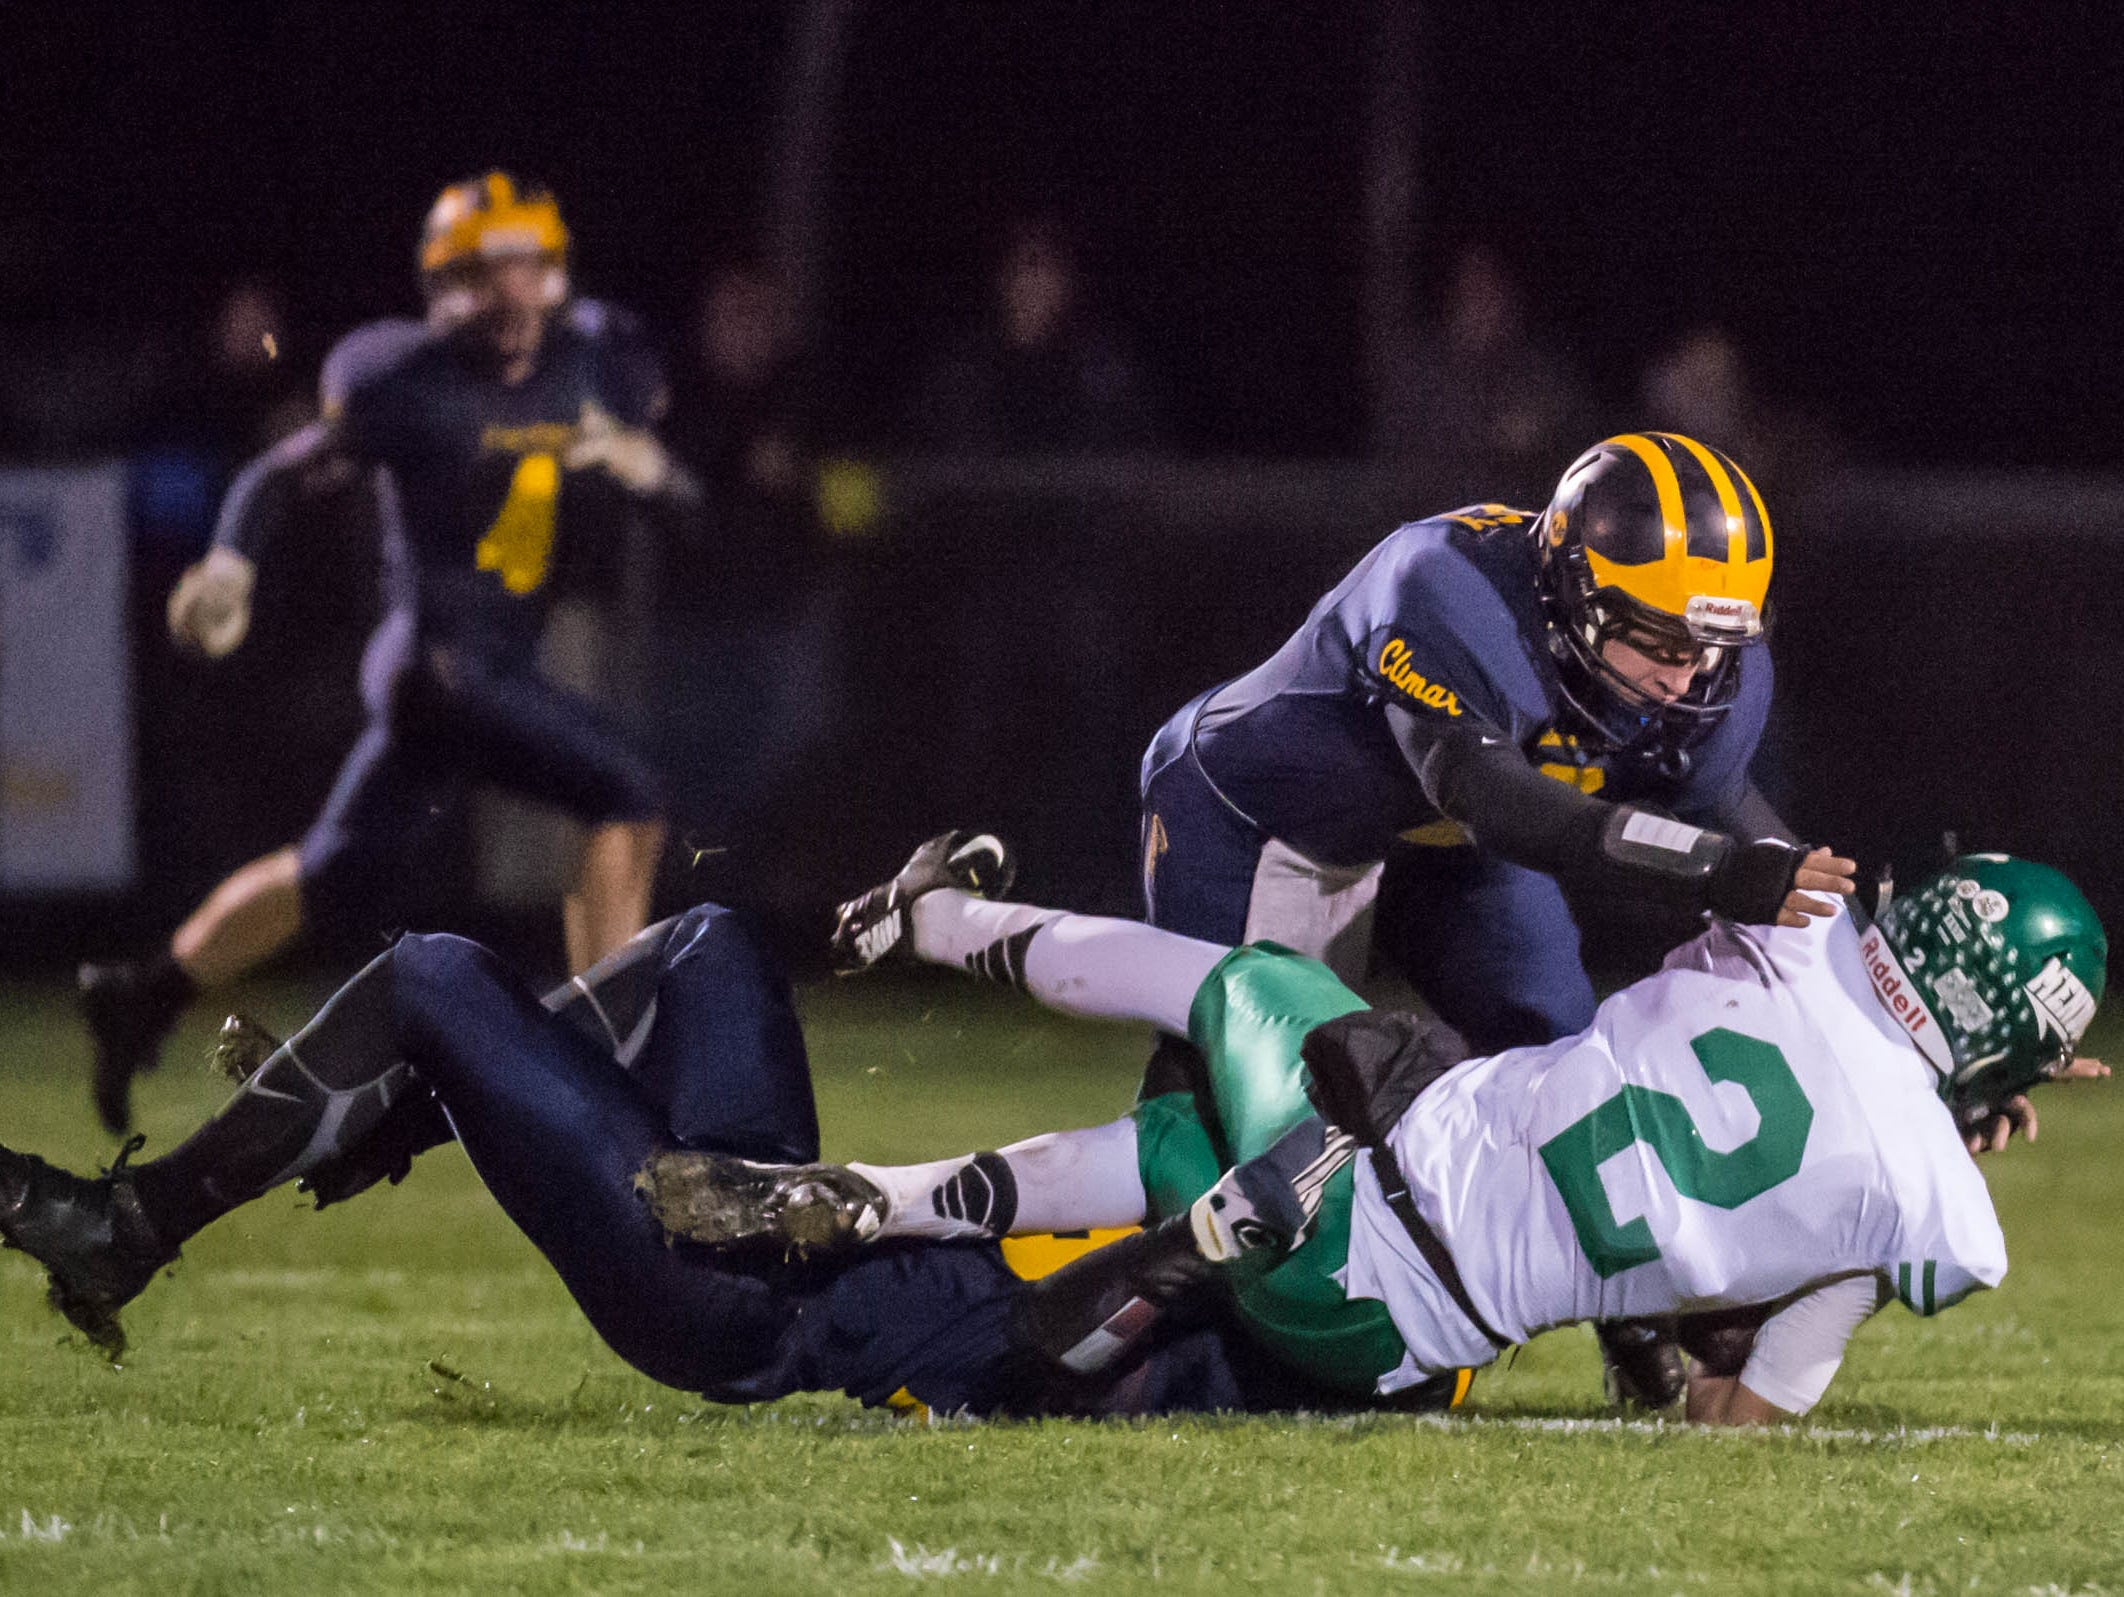 Climax-Scotts's Zackary Mobley tackles the Mendon player Friday evening.